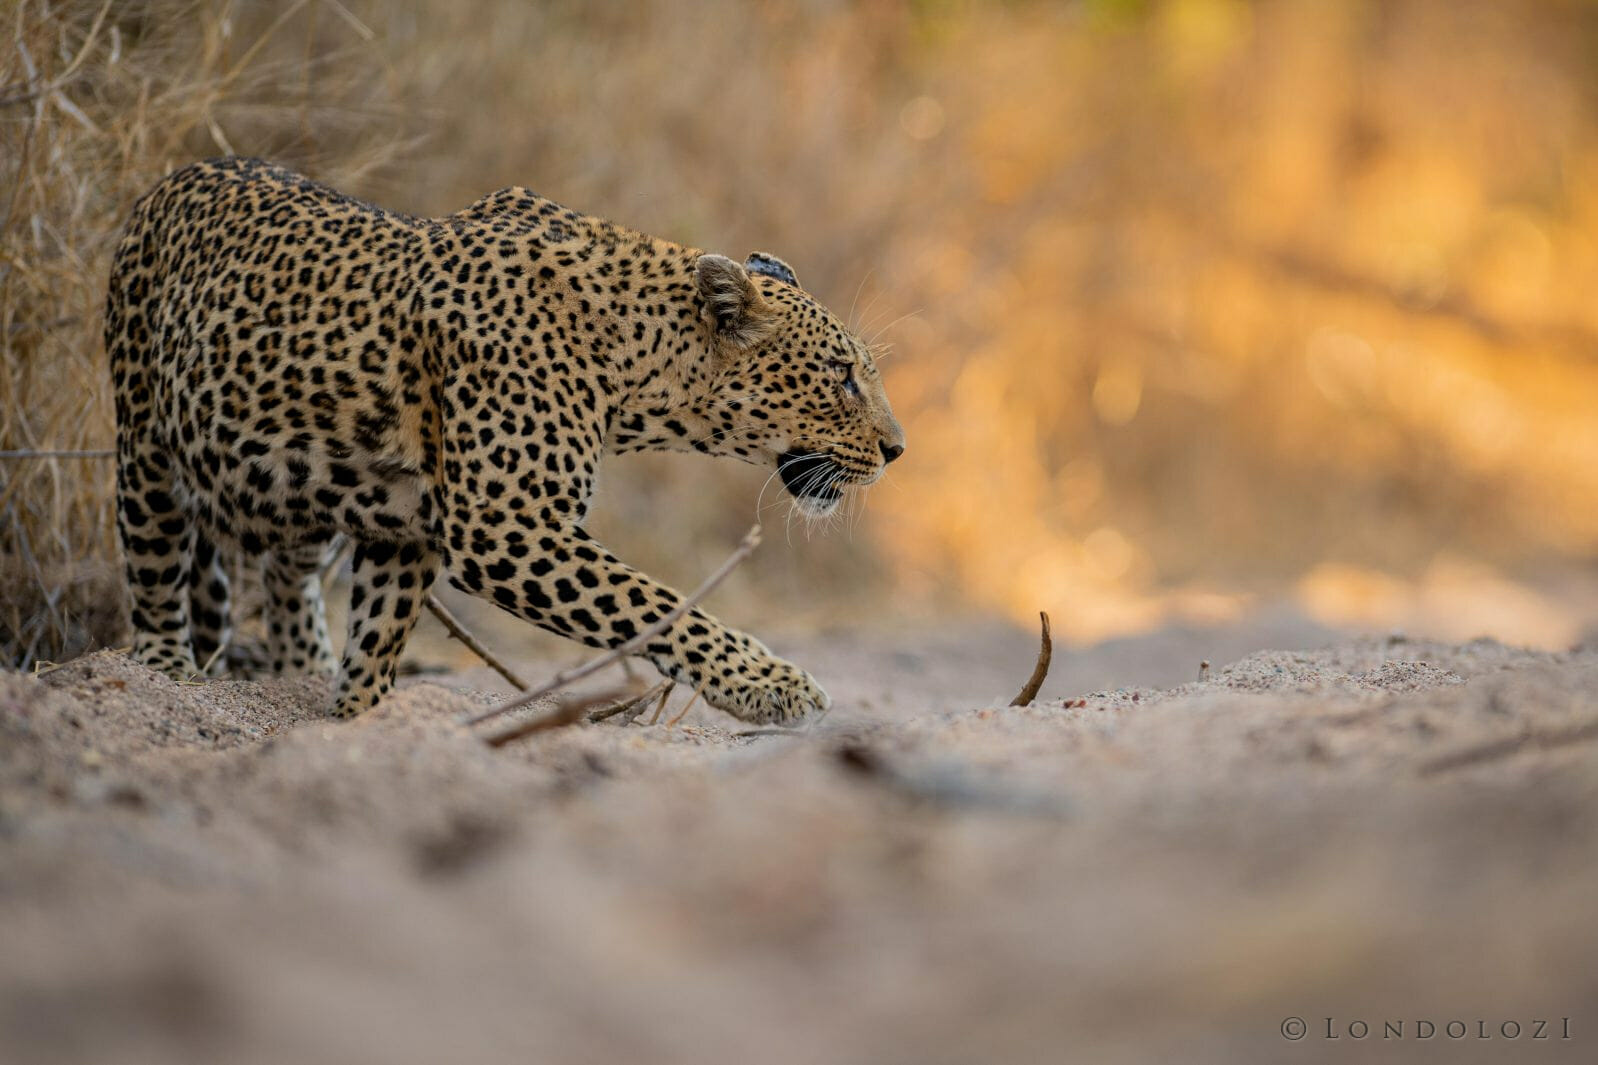 Mashaba In The Mash River Jt 300mm 1 320 2.8 Iso320 1 Of 1